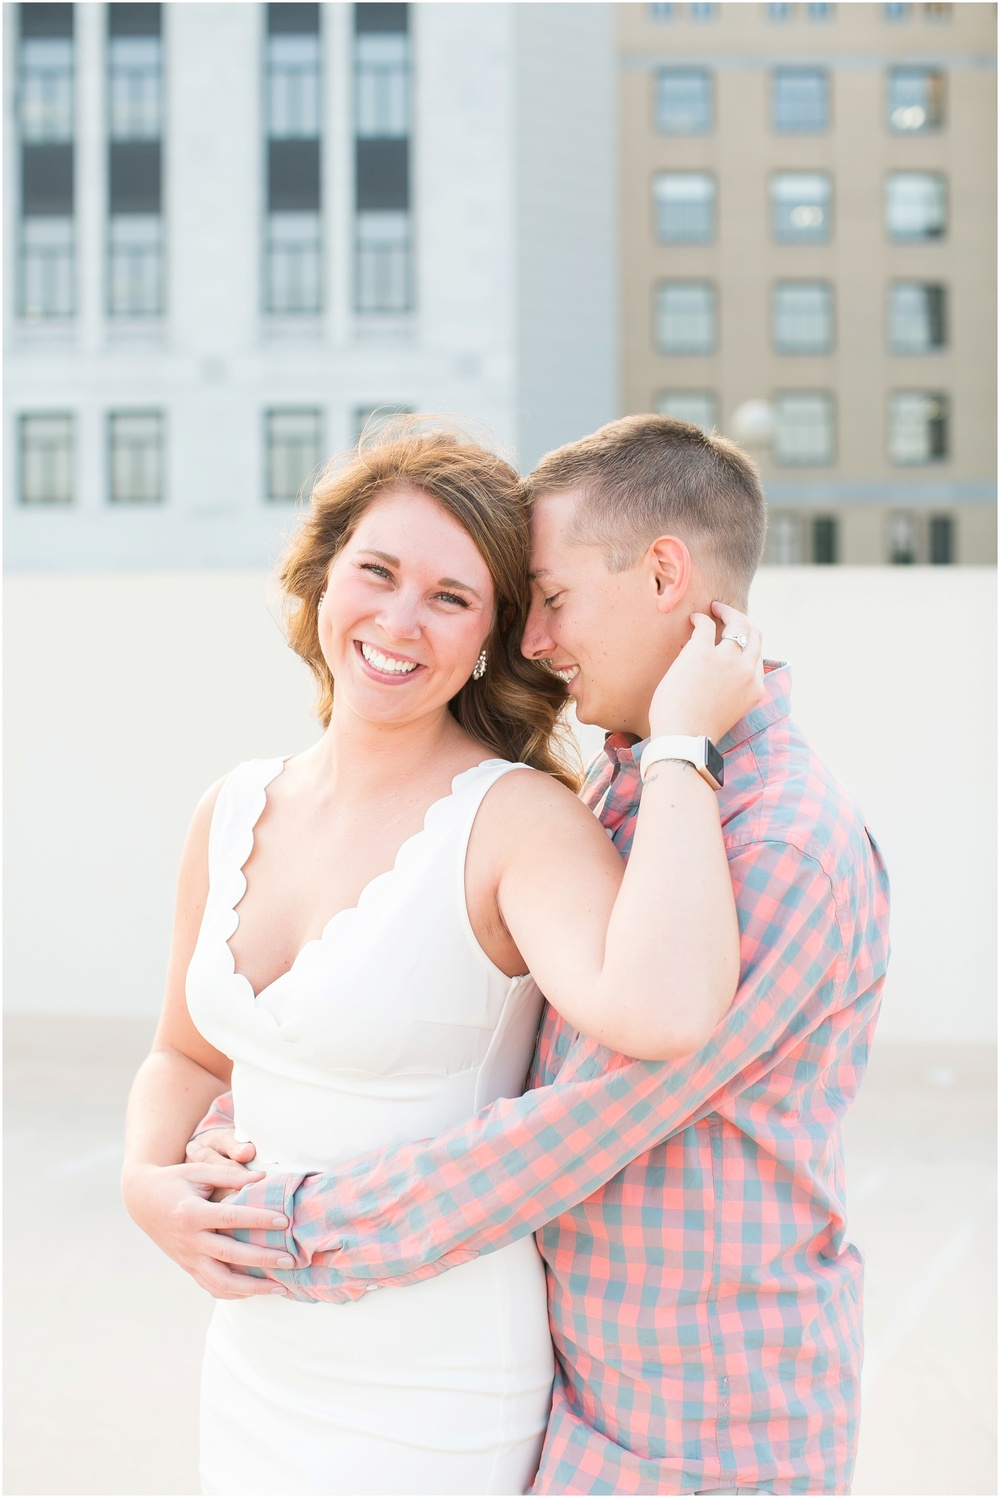 Downtown_Madison_Wisconsin_Engagement_Session_Waterfront_Monona_Terrace_0473.jpg